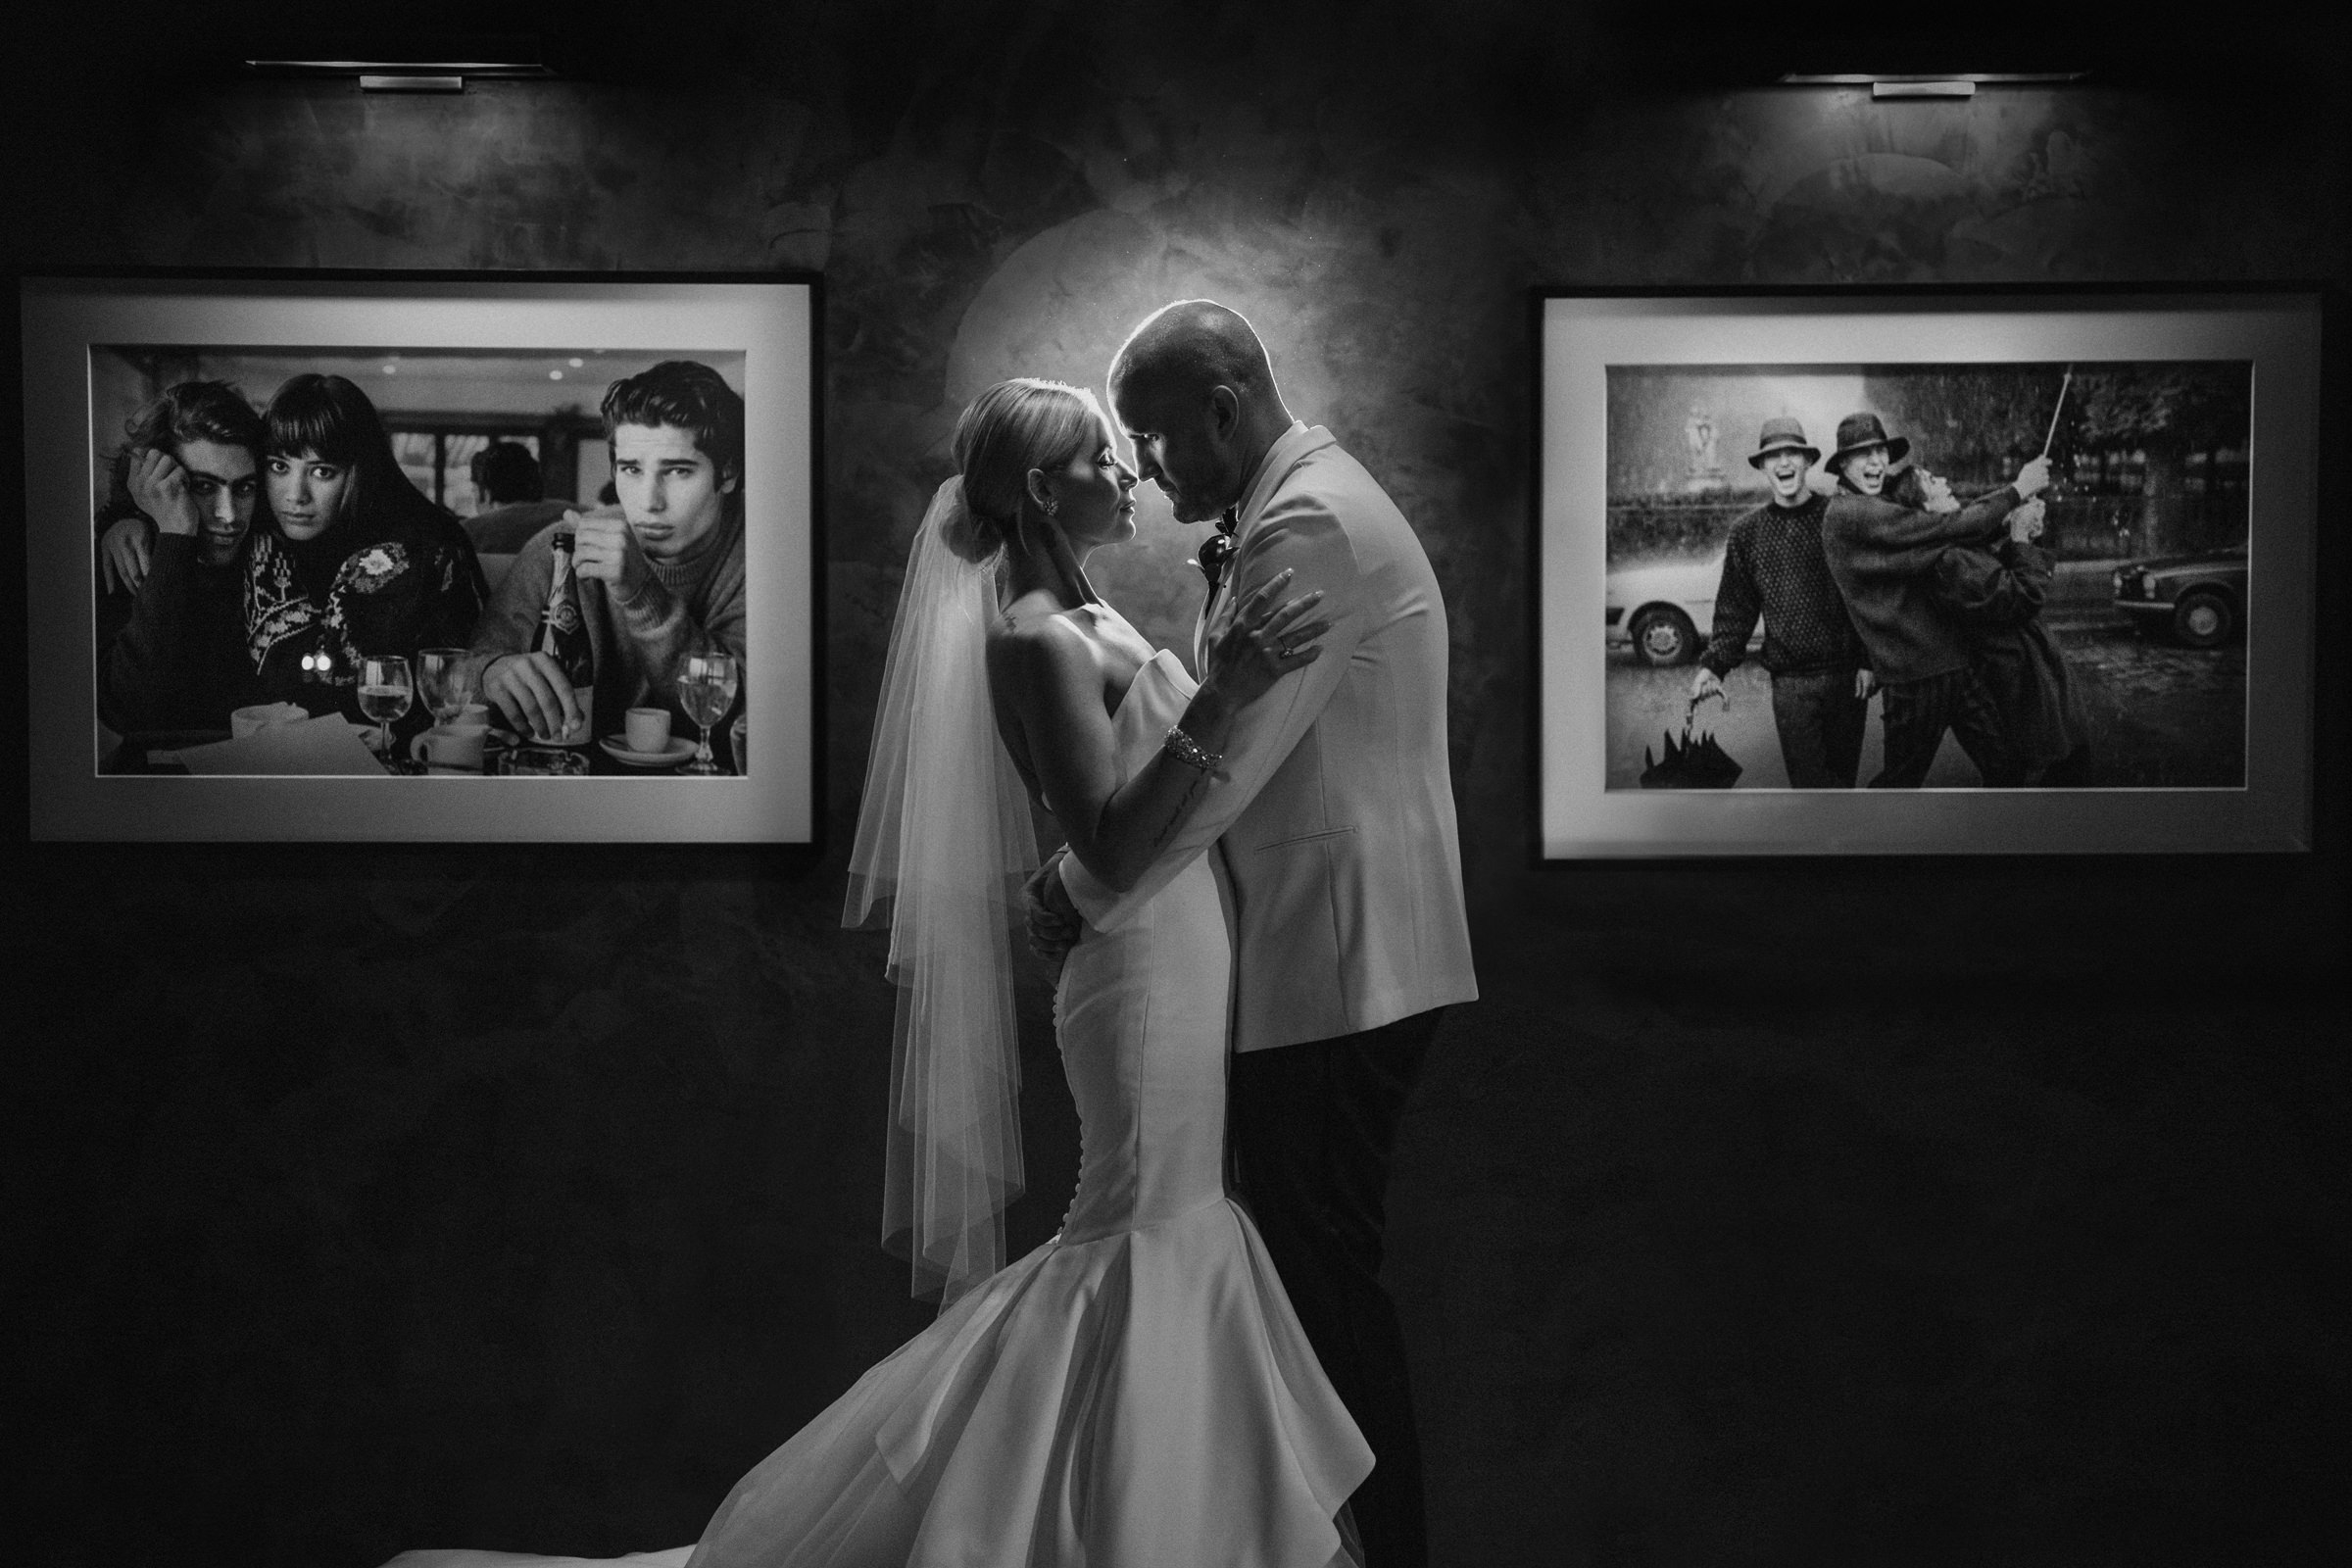 Bride and groom face to face amidst photos - Photo by Susan Stripling Photography